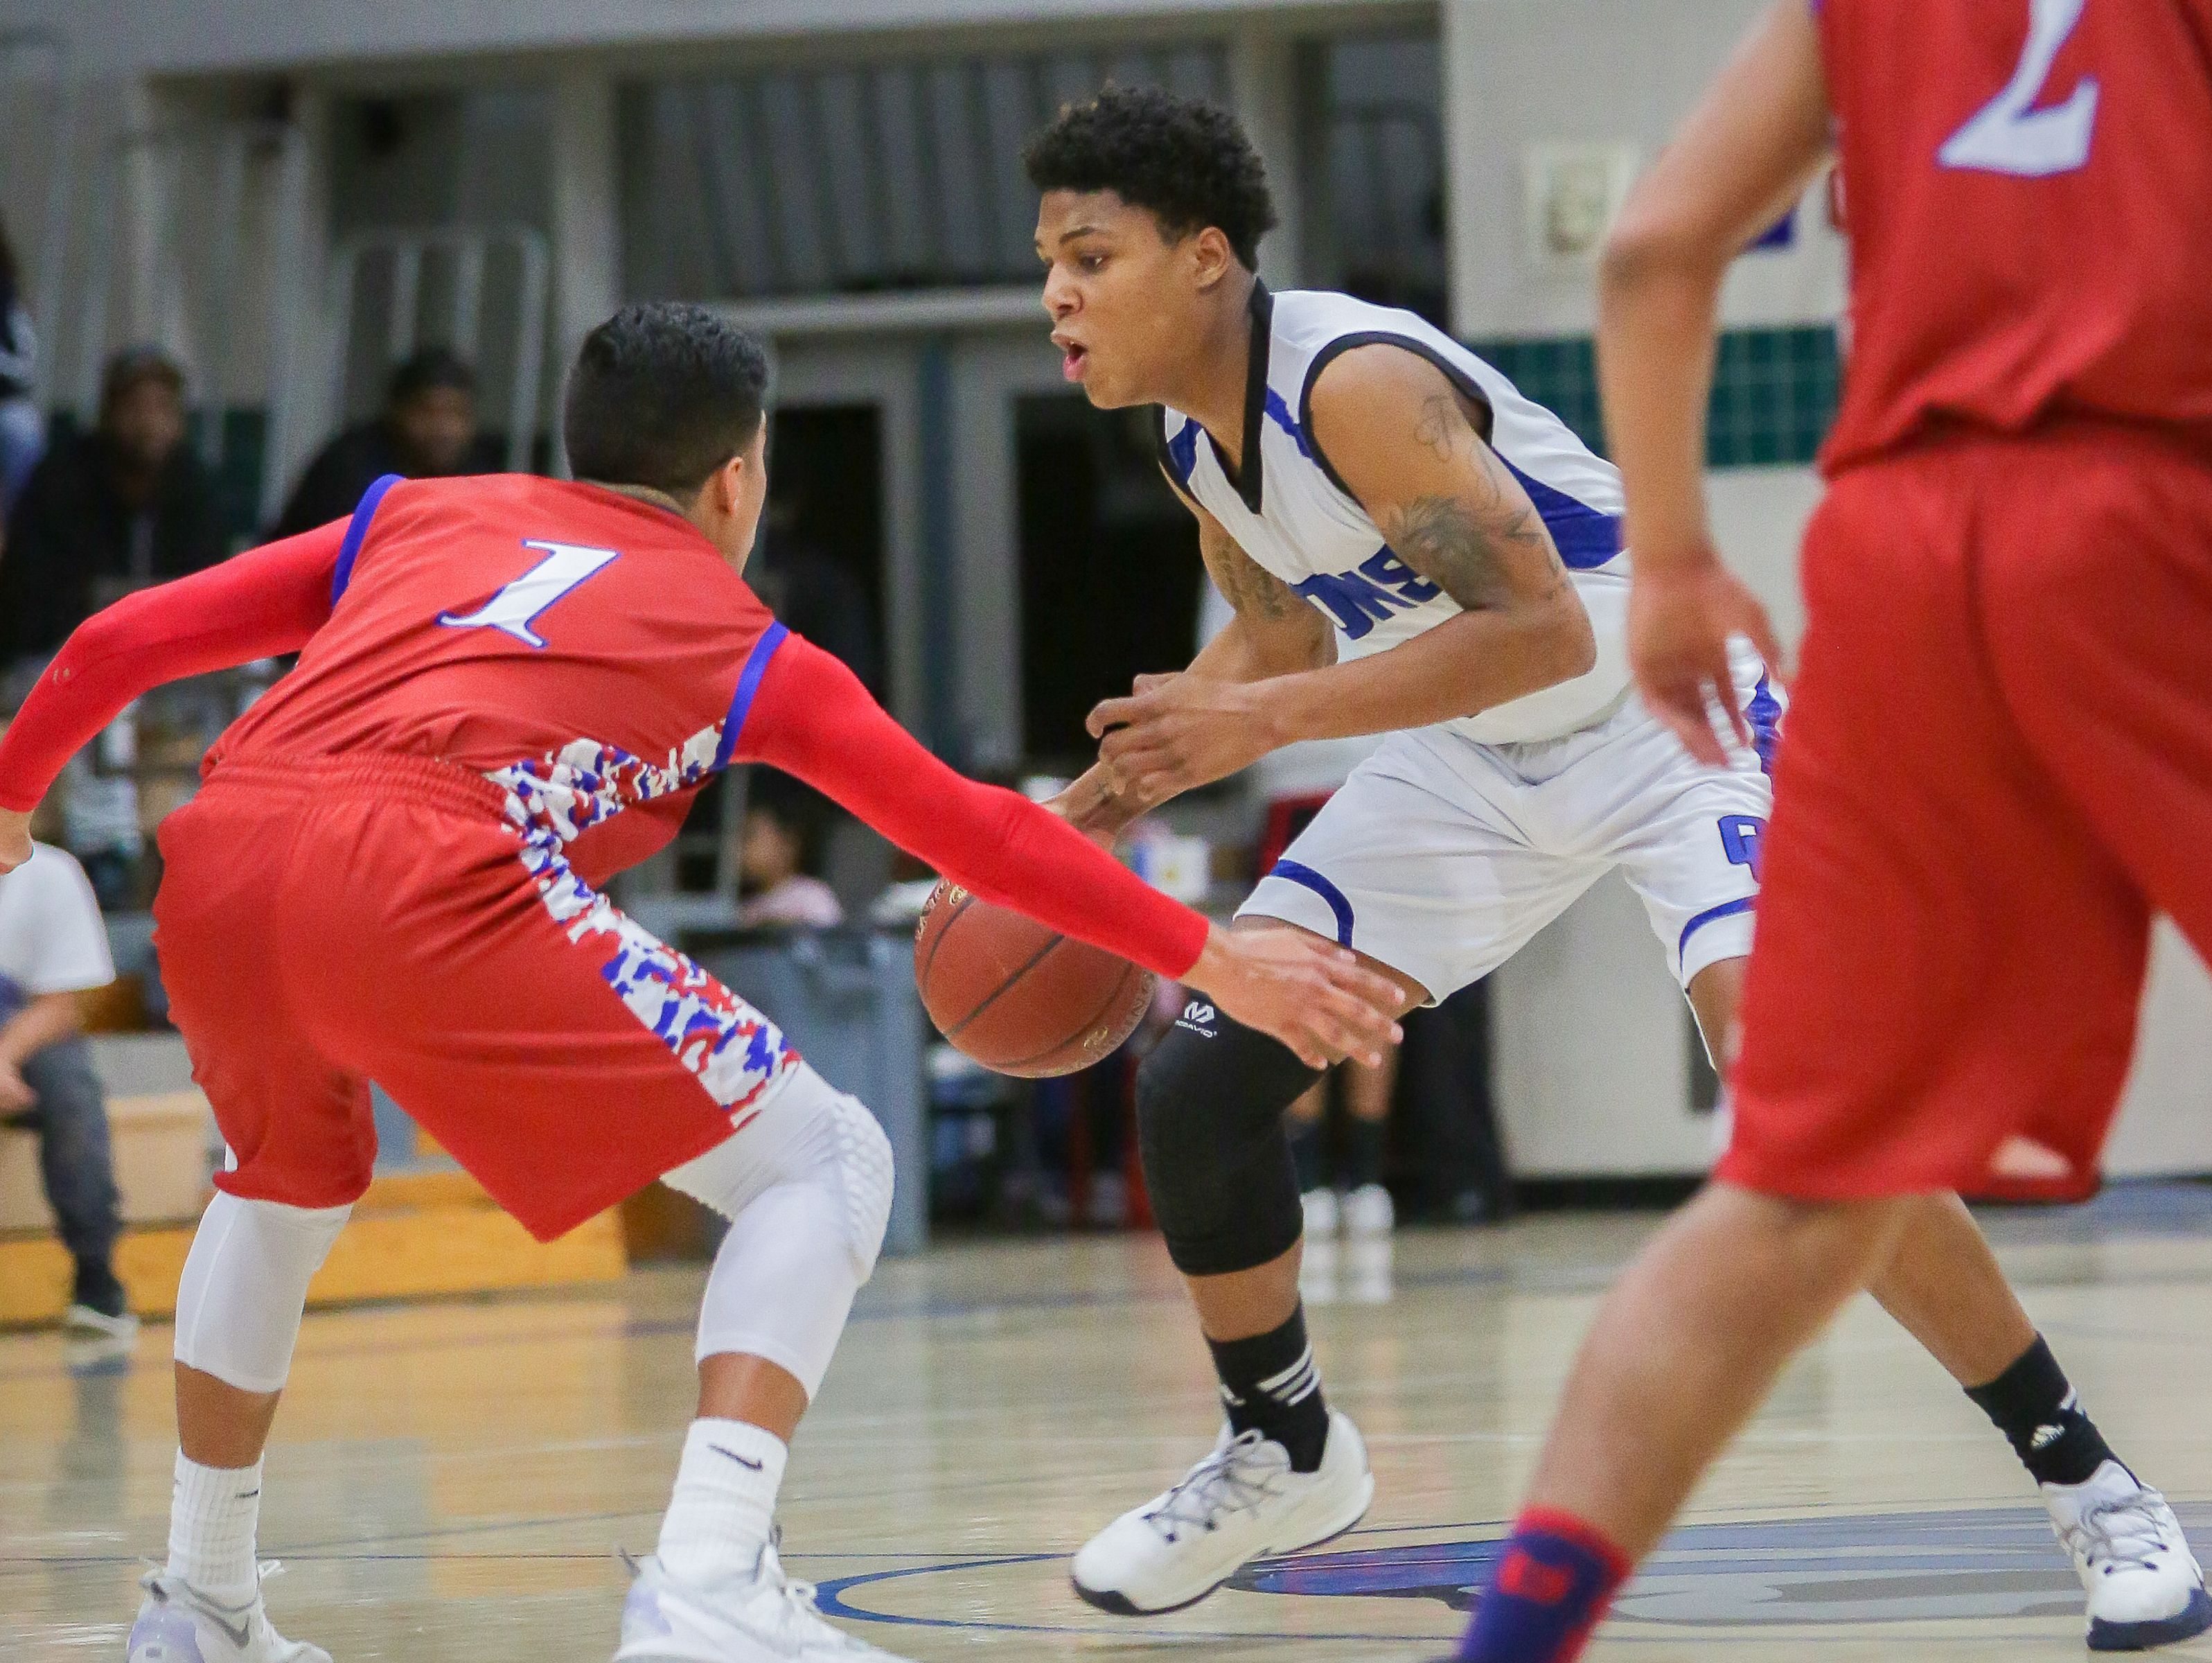 Kavonte Kinney trying to get past the Indio defense, Friday, Jan. 7, 2017. The Rajahs won Friday's game against Cathedral City 66-61.